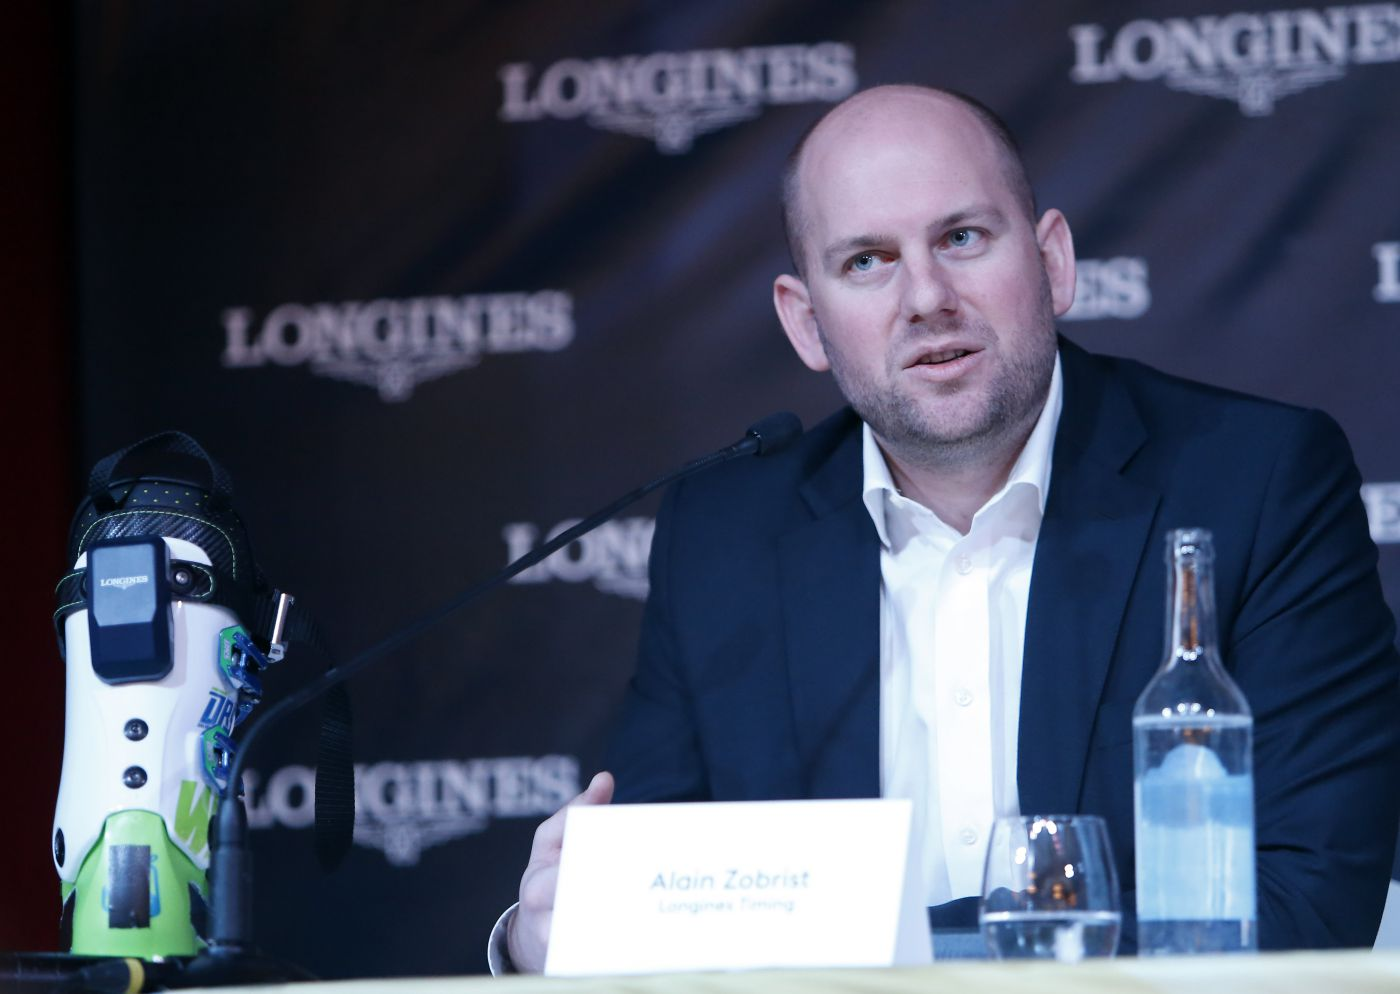 Longines Alpine Skiing Event: Official launch of the Longines Live Alpine Data system at the FIS Alpine World Ski Championships St. Moritz 2017 5